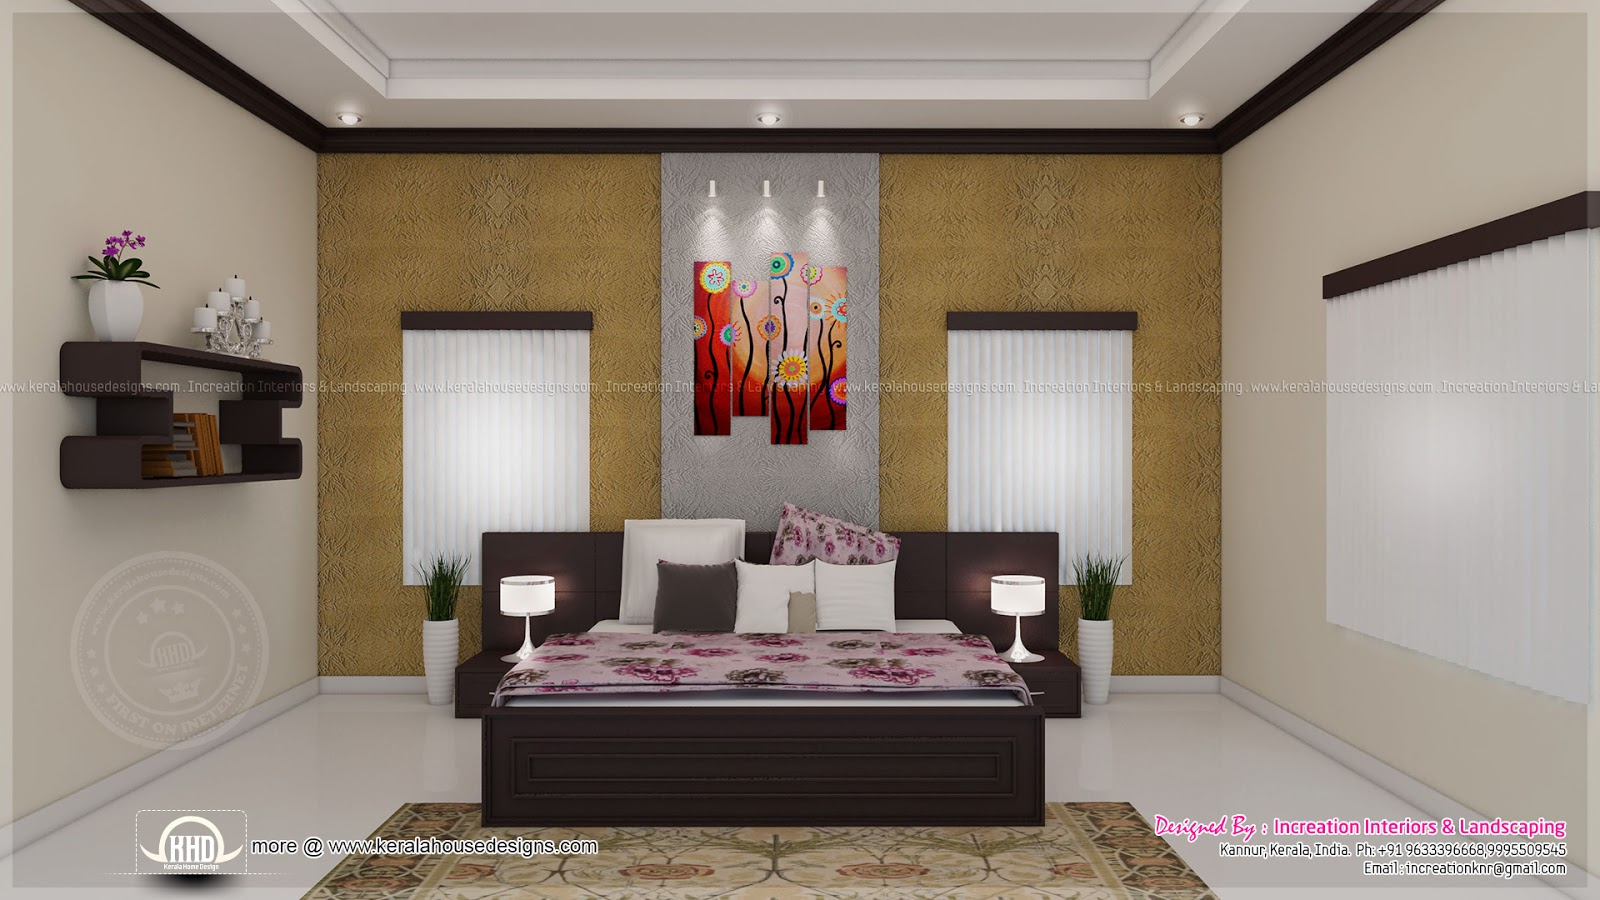 House interior ideas in 3d rendering kerala home design Home interior design bedroom